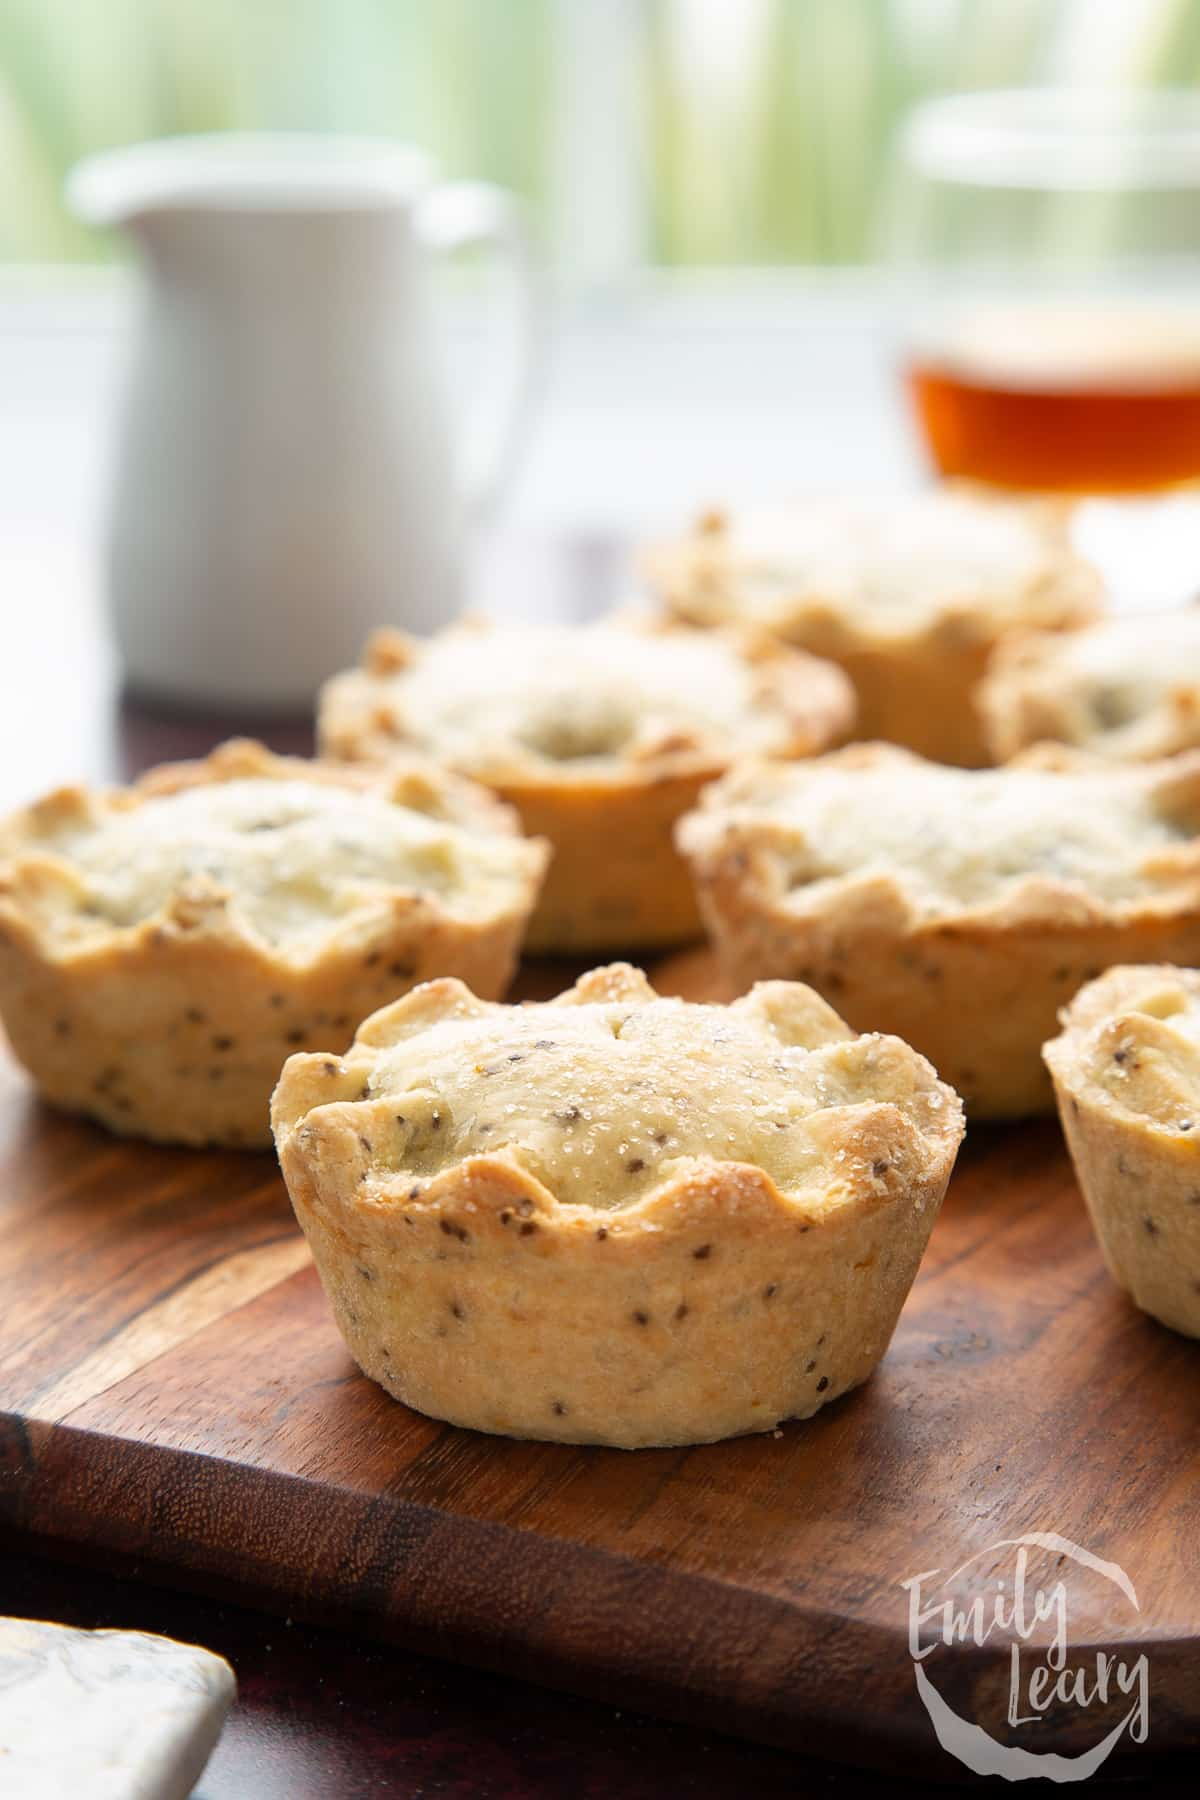 Vegan mince pies on a wooden board.